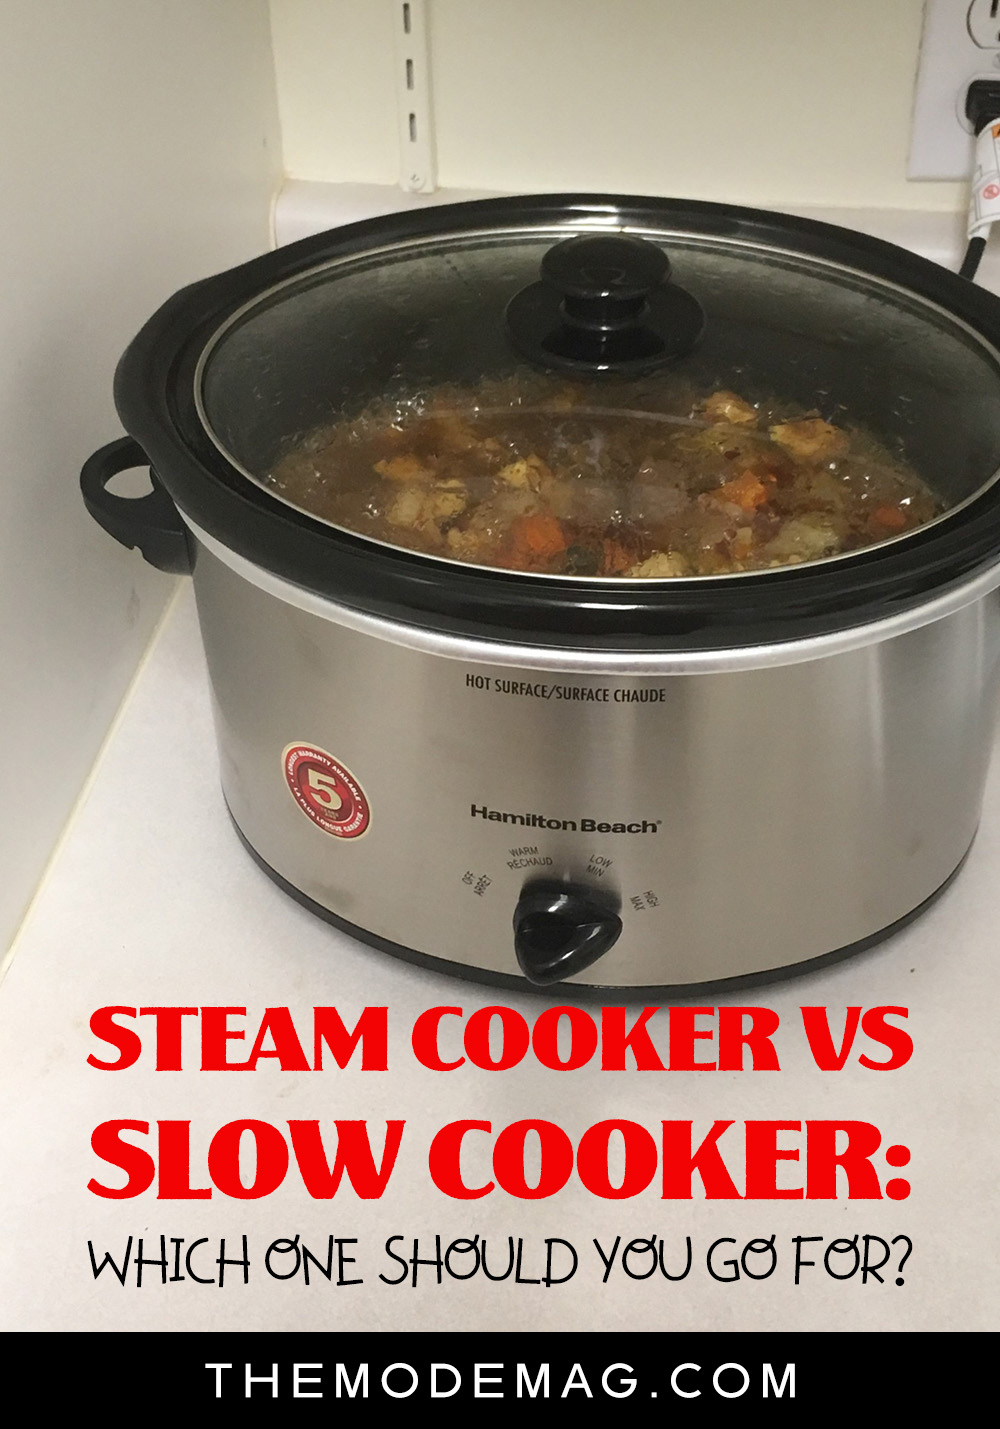 Steam Cooker vs Slow Cooker: Which One Should You Go For?